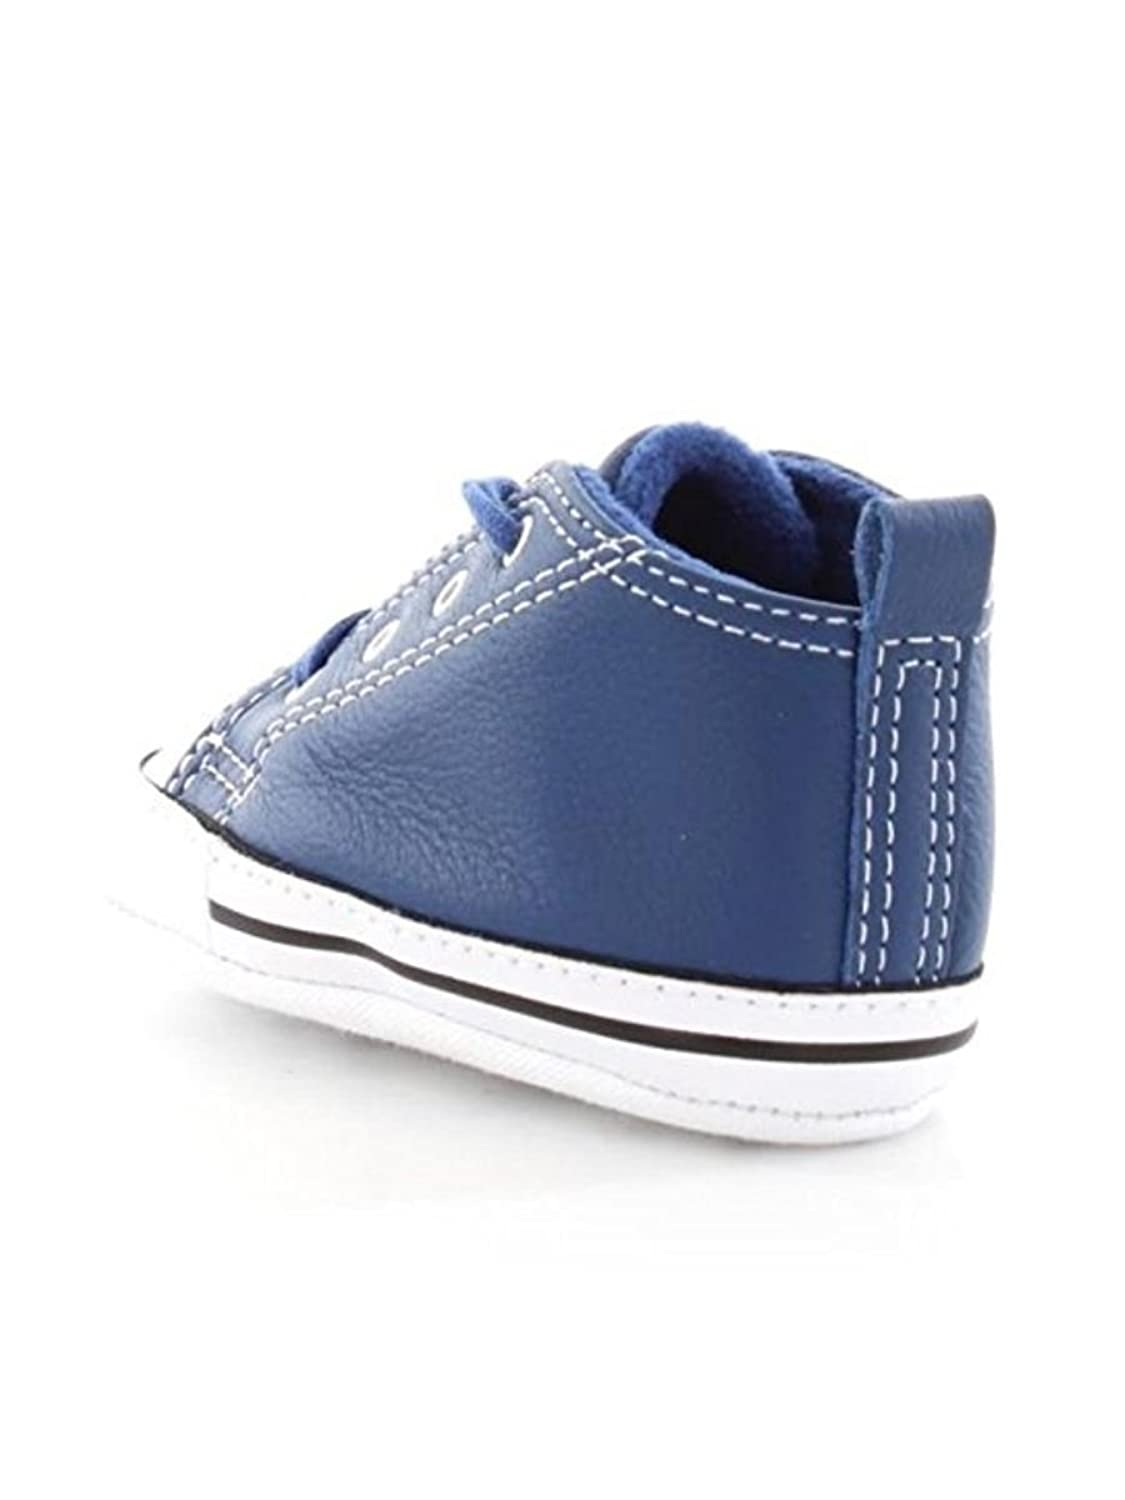 Converse 855119c First Star Royal Sneakers Bambino Royal 19 Visita Aclaramiento Footlocker Finishline Línea Barata Venta Barata Comercializable ThXY9